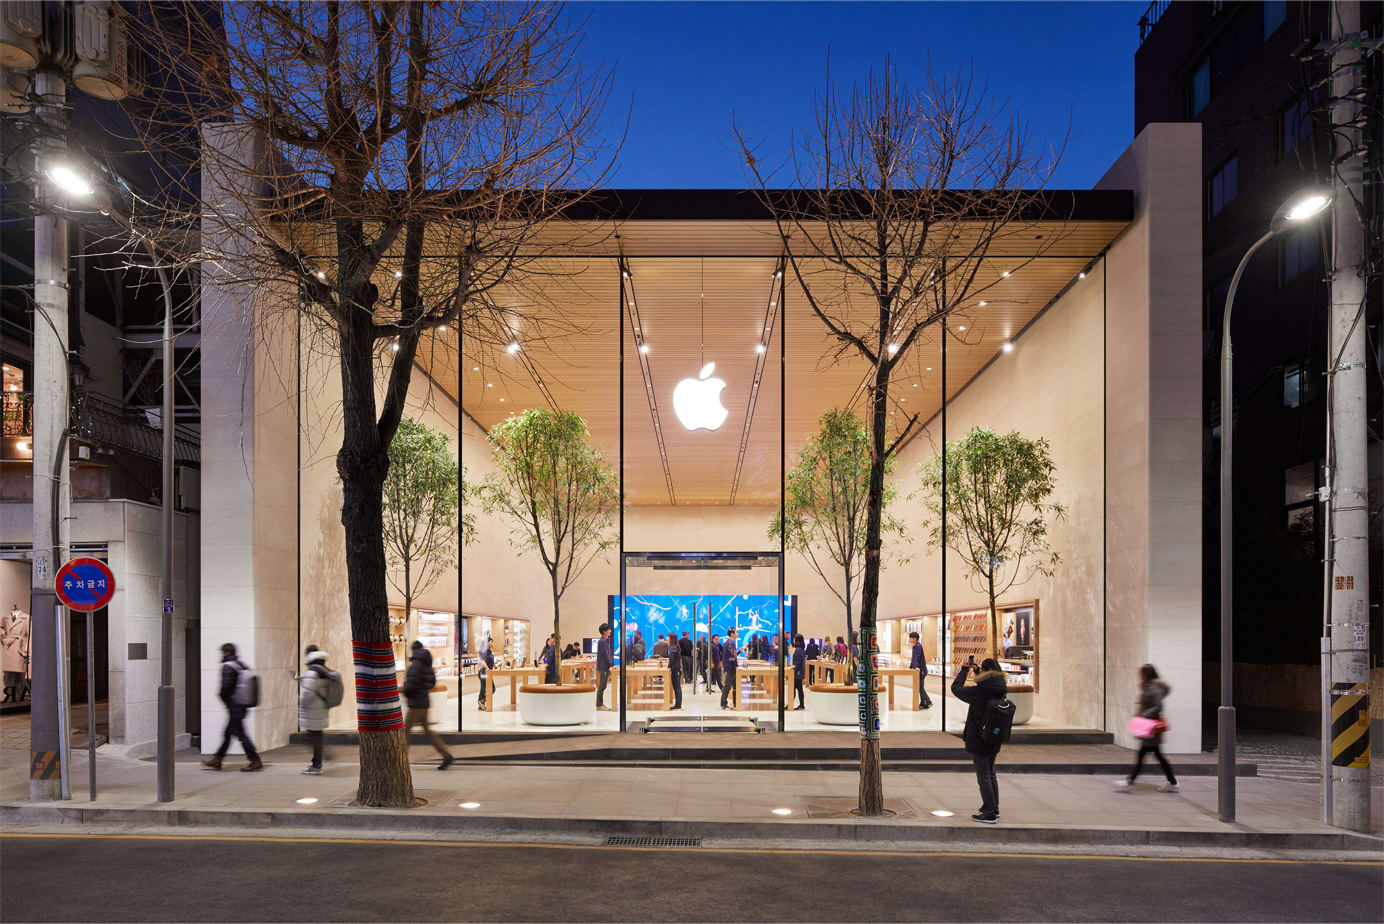 apple-users-can-now-shop-with-a-specialist-20200709-1